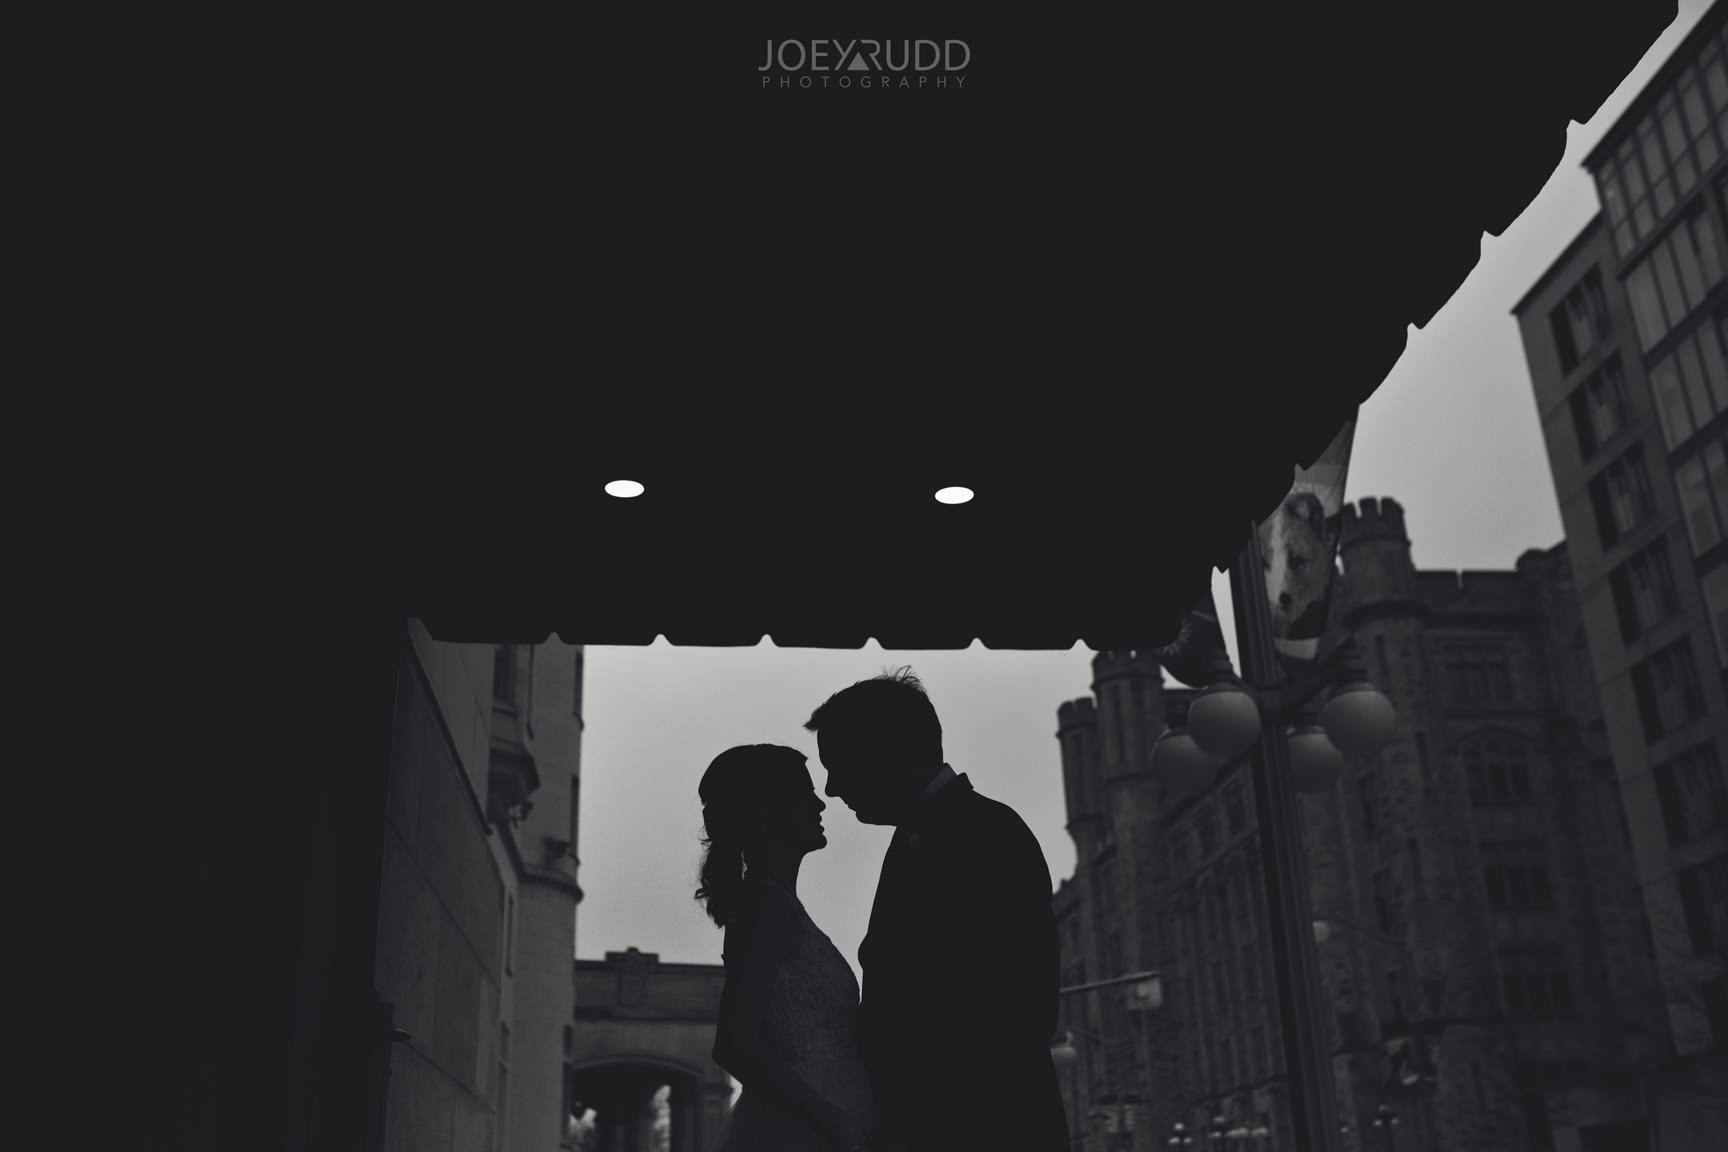 Chateau Laurier Elopement Wedding by Ottawa Wedding Photography Joey Rudd Photography Black and White